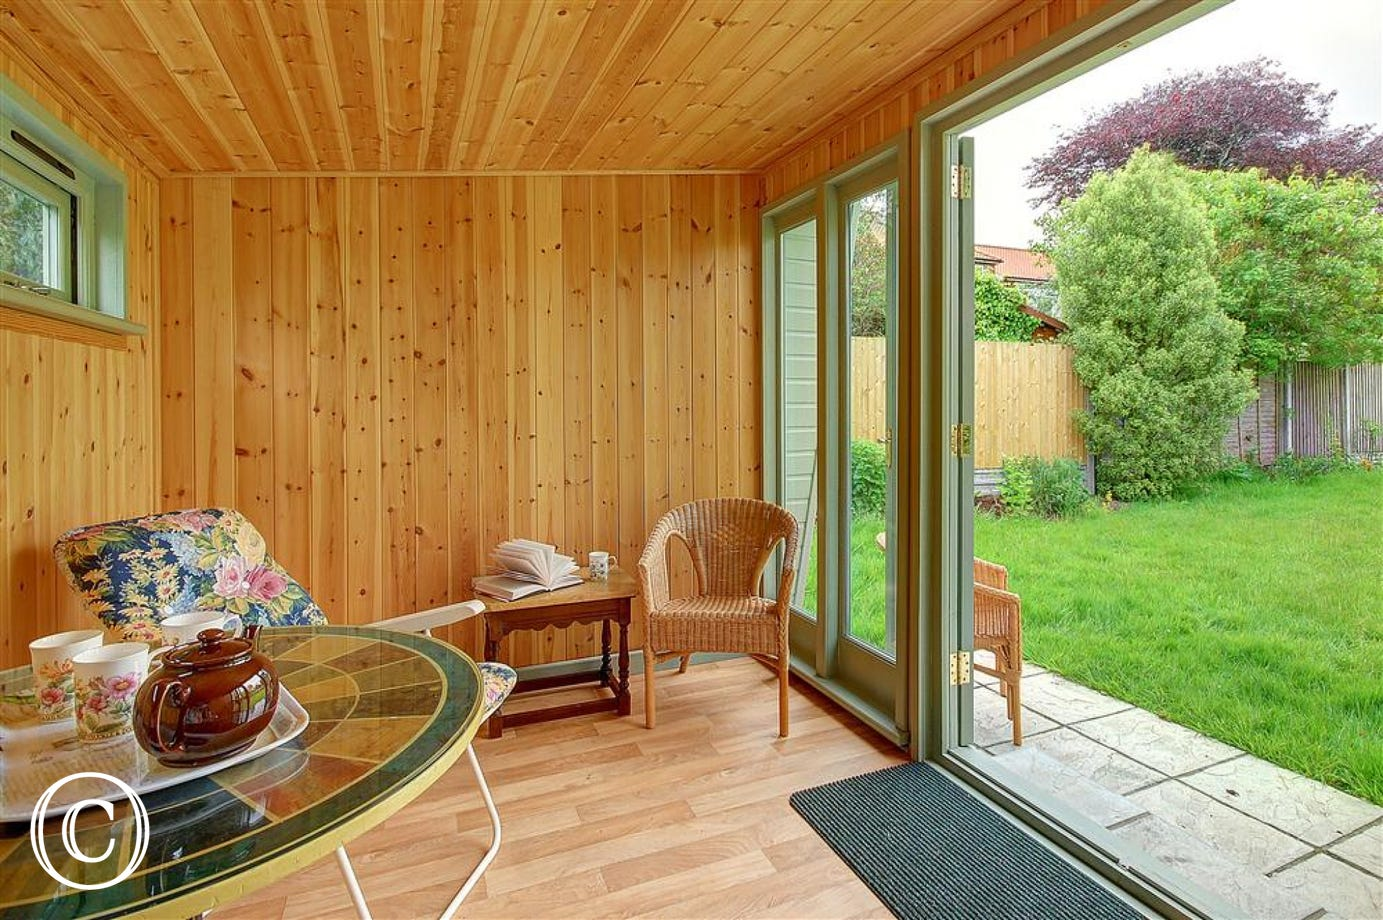 This welcoming summerhouse with warm wooden walls is great for enjoying a few alfresco meals and enjoying the garden.